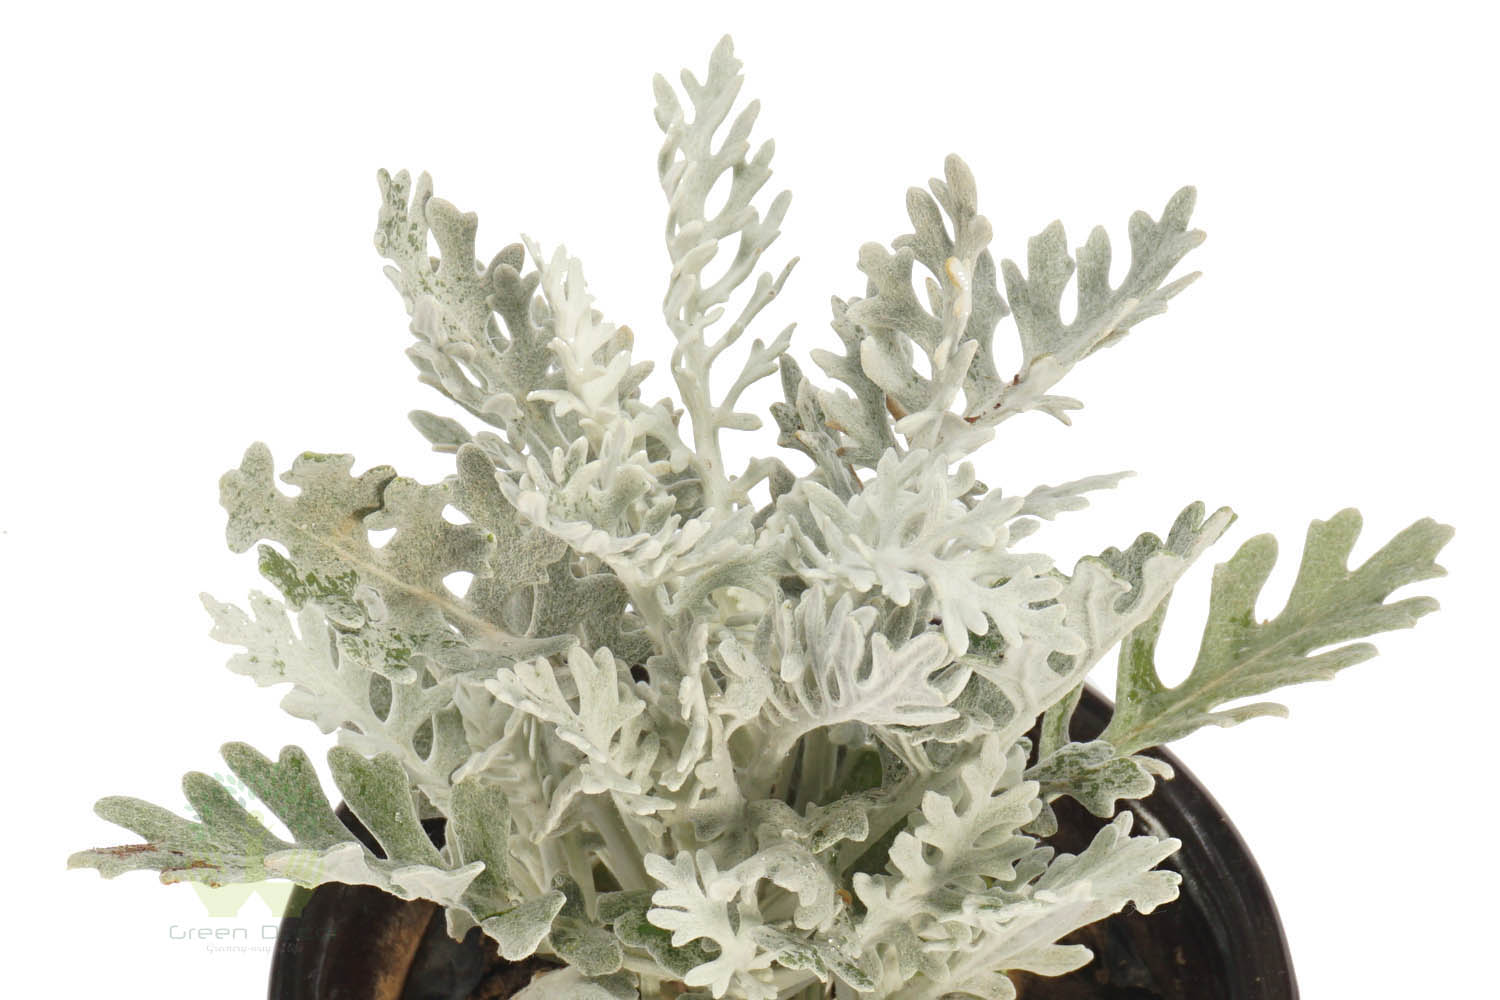 Buy Silver Dust Plants , White Pots and seeds in Delhi NCR by the best online nursery shop Greendecor.